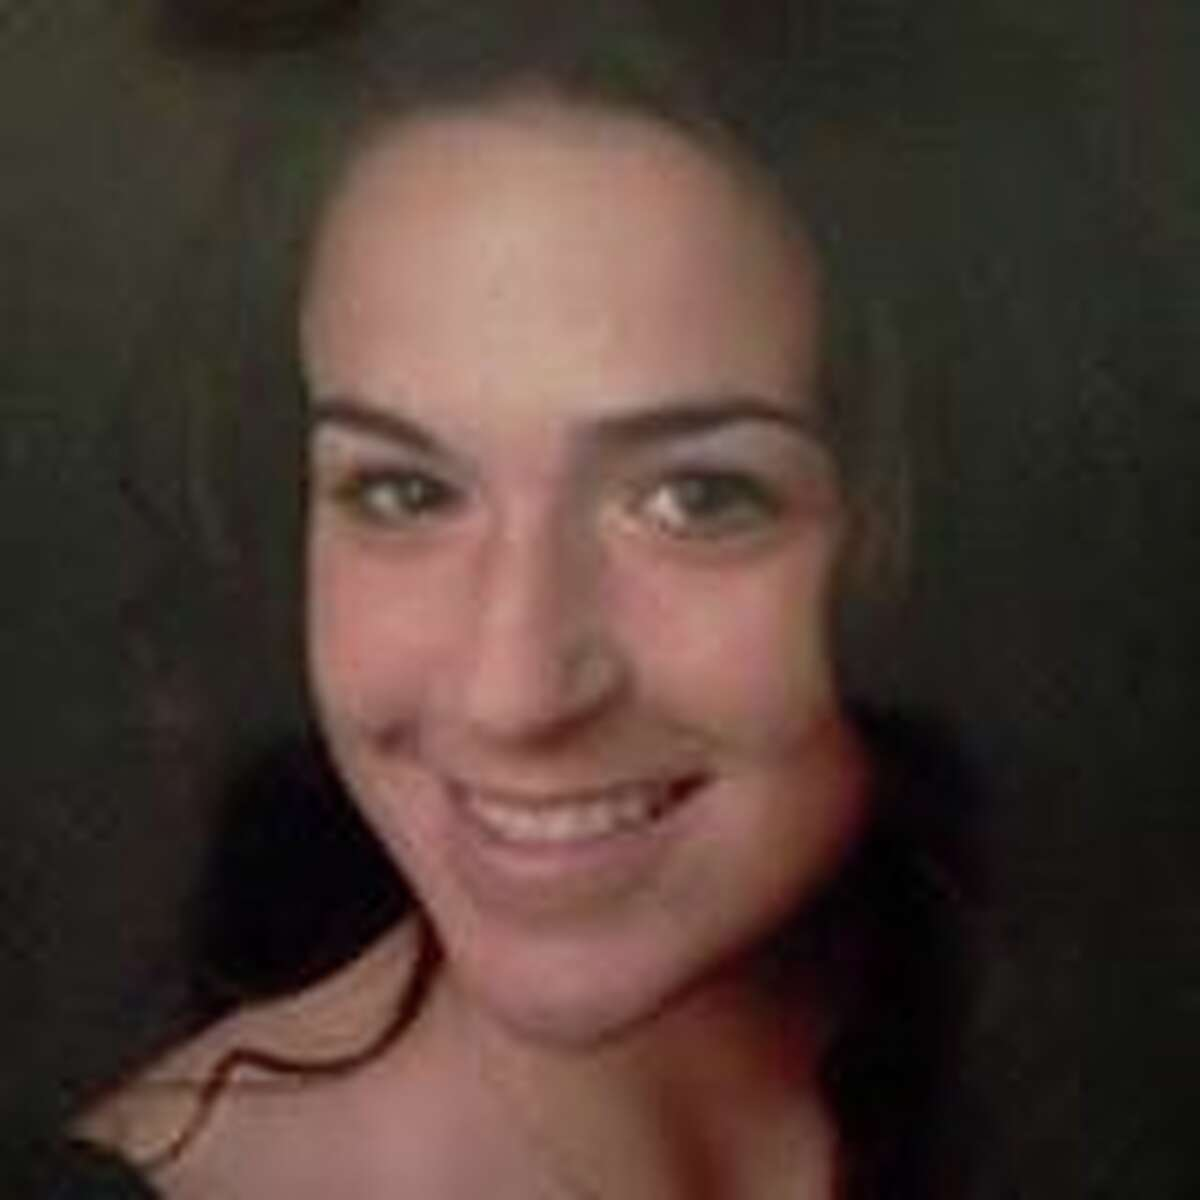 Meghan Beebe, 21, was killed in a hit-and-run incident in Byram early Saturday morning.